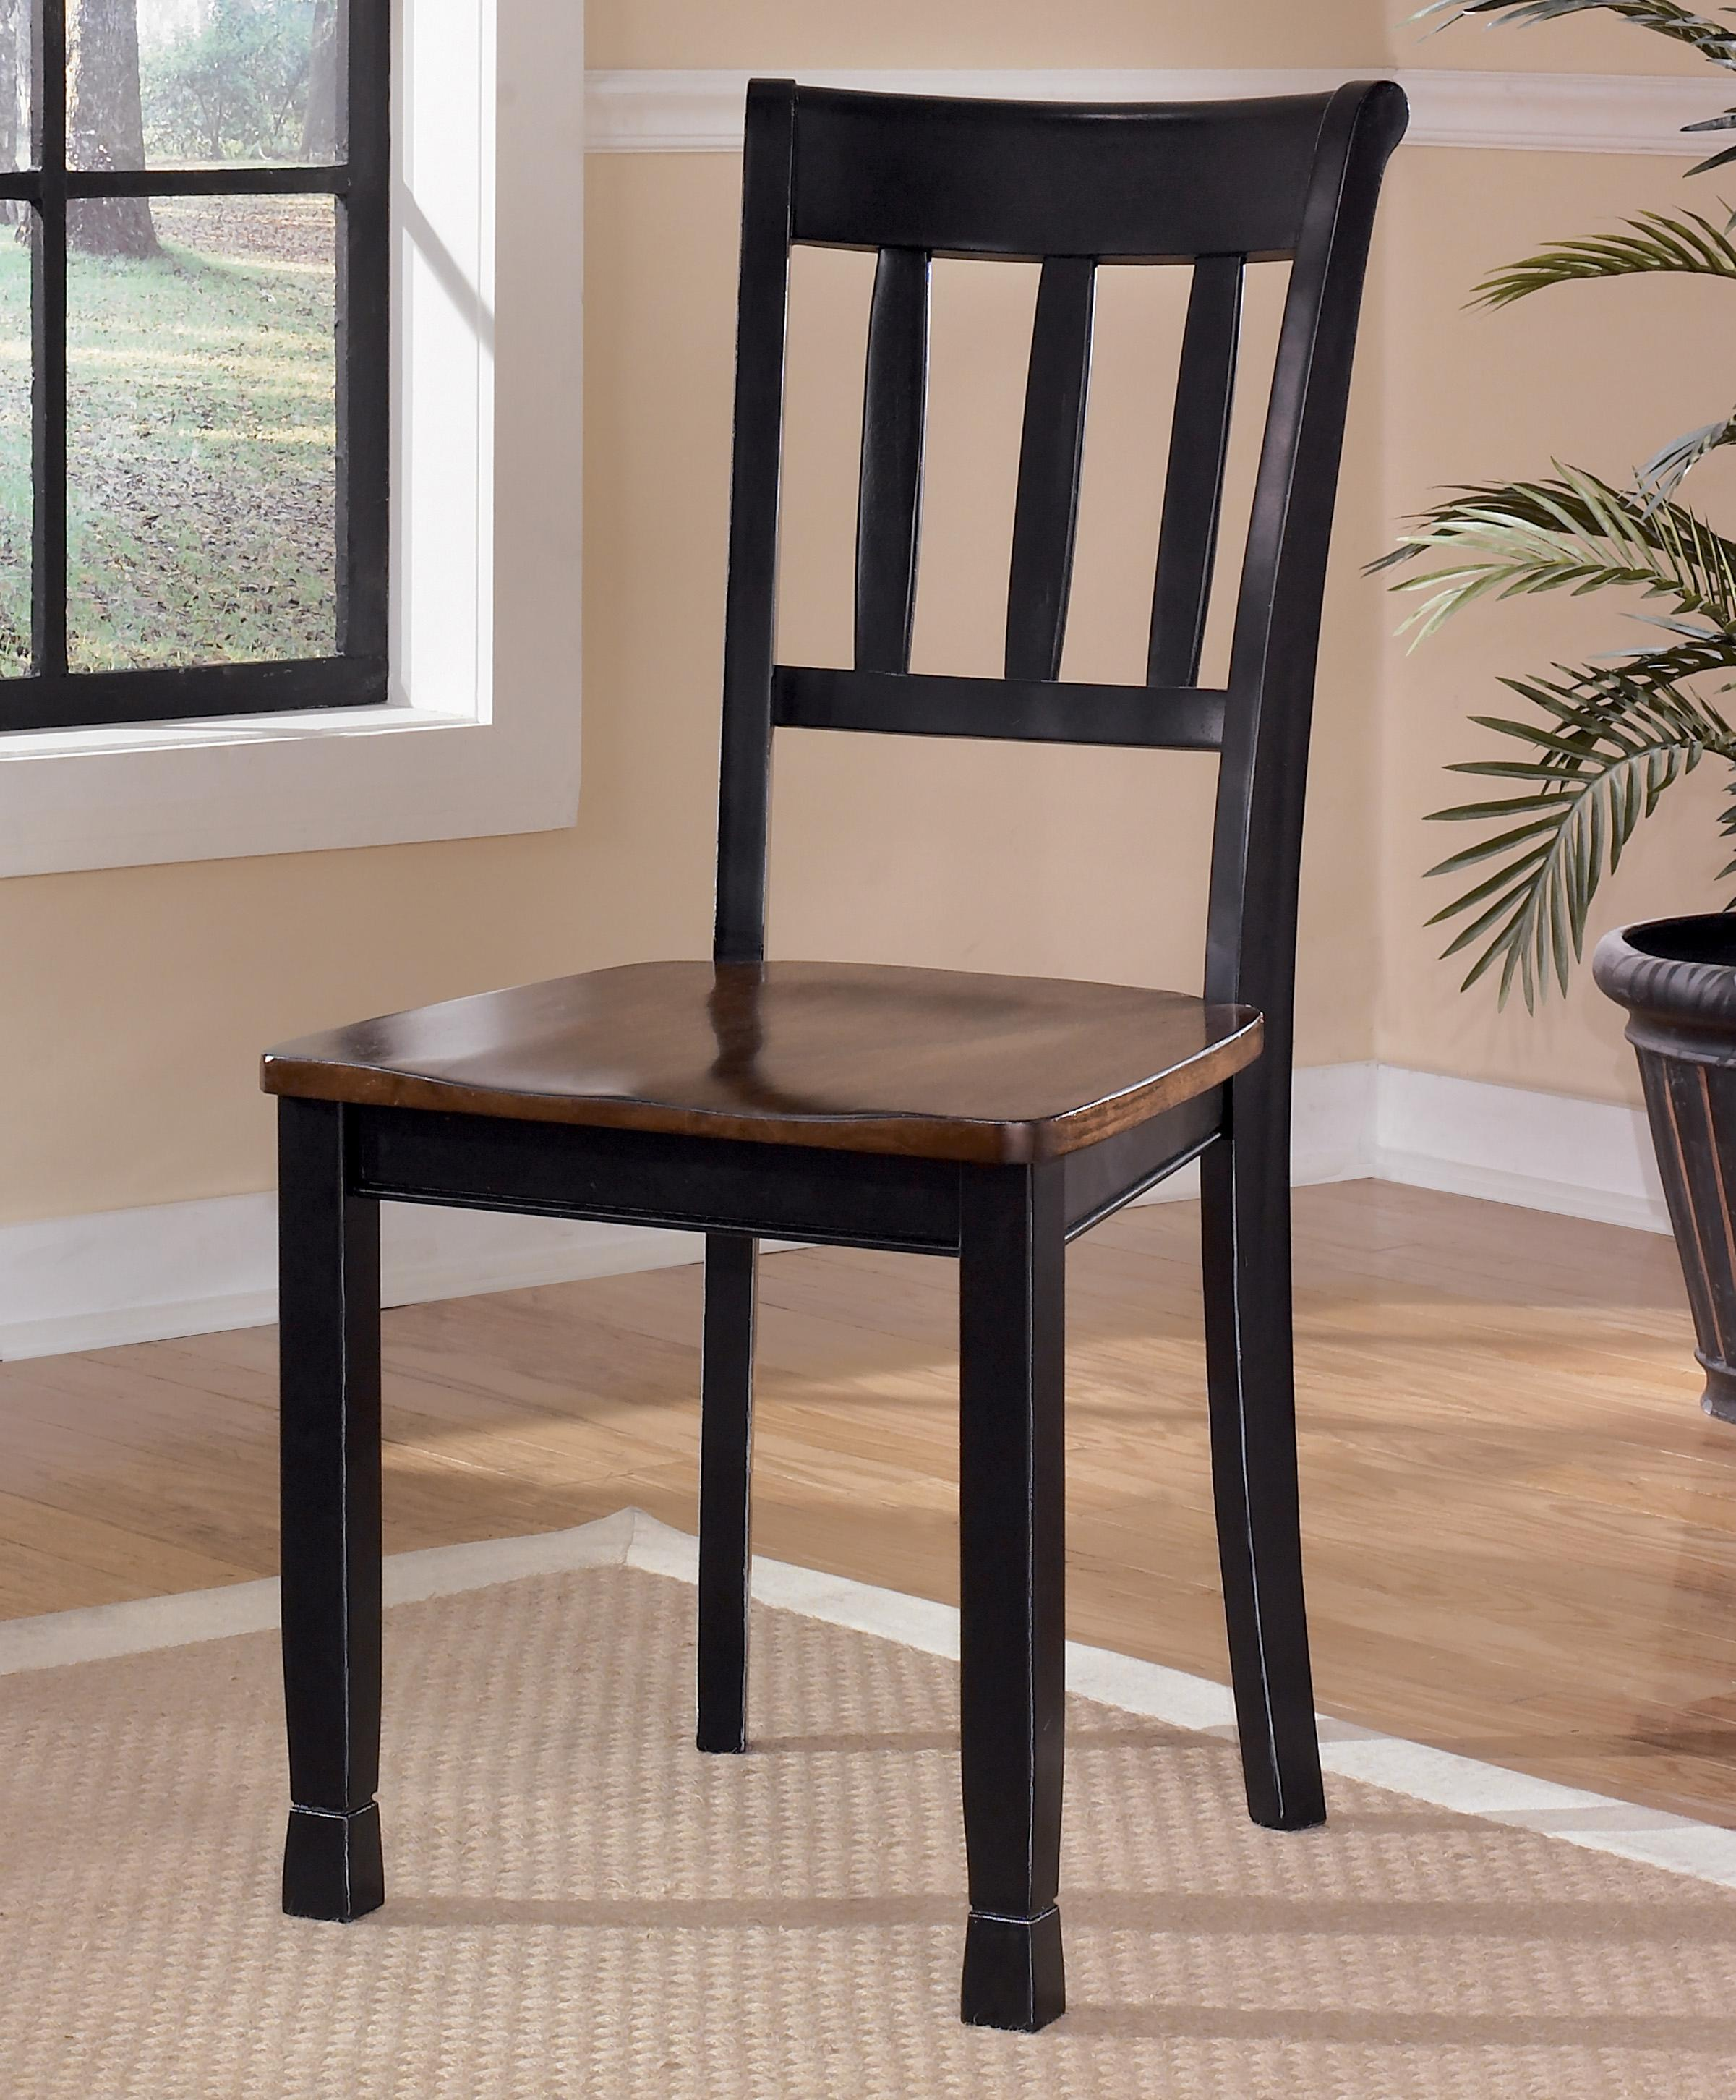 Owingsville Dining Room Side Chair by Ashley (Signature Design) at Johnny Janosik